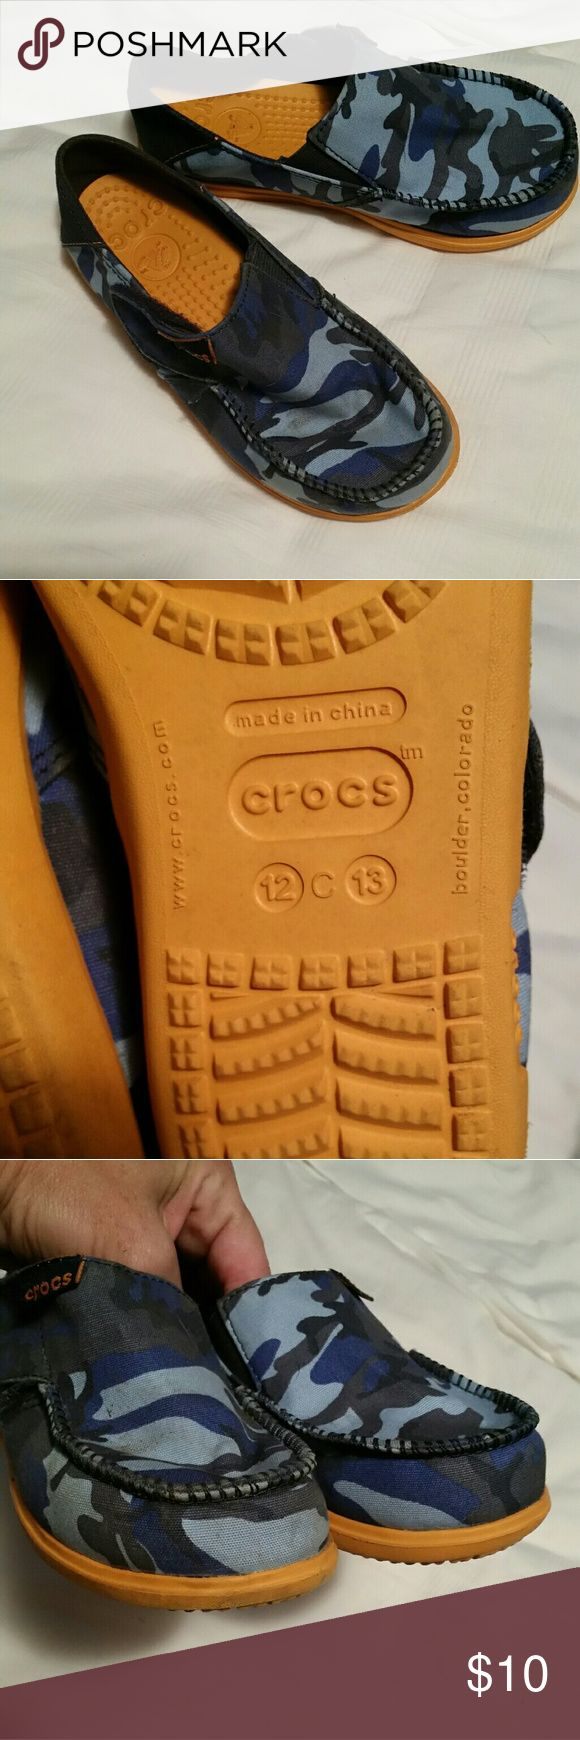 Crocs kids blue camo shoes In great condition. Velcro on the side. The size on the bottom says 12 13. CROCS Shoes